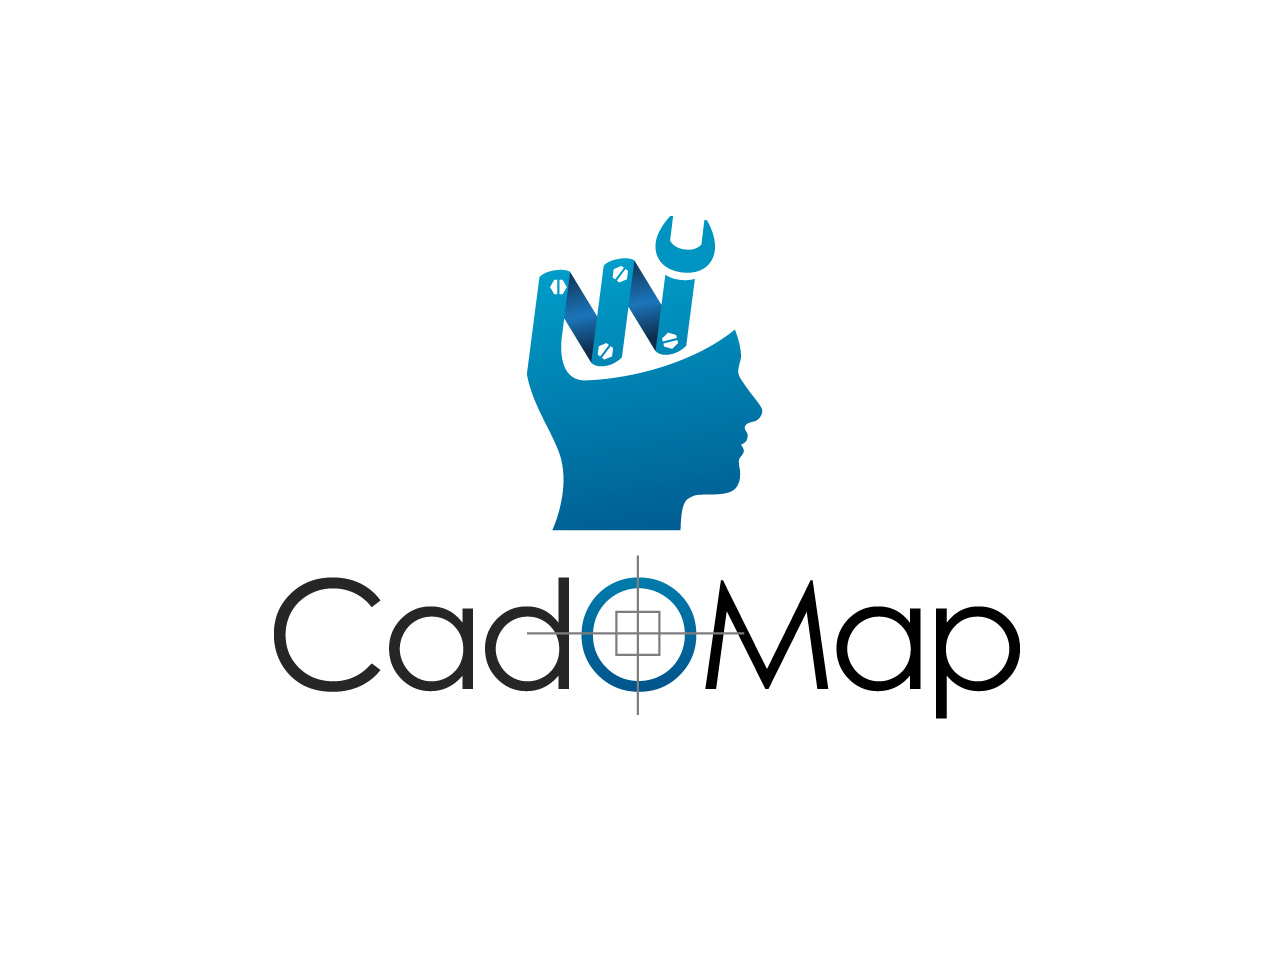 Logo Design by jpbituin - Entry No. 41 in the Logo Design Contest Captivating Logo Design for CadOMap software product.